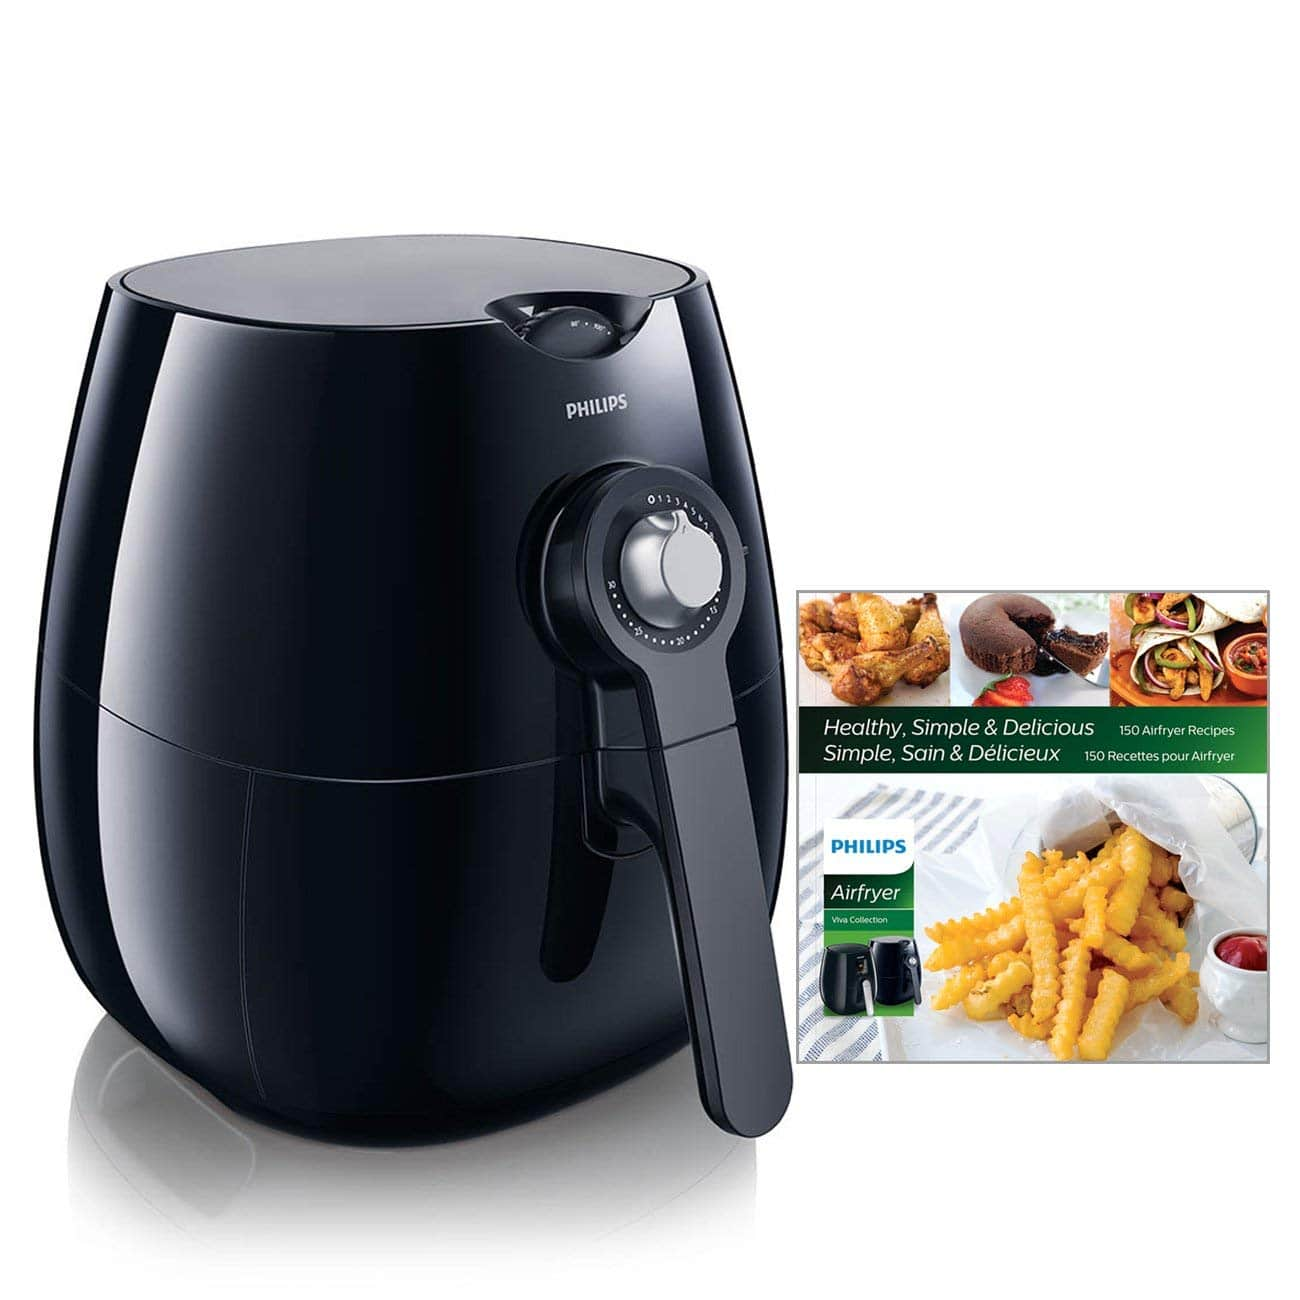 Philips HD9220/28 Viva Airfryer (Amazon Warehouse - Condition:Used - Like New) $41.73